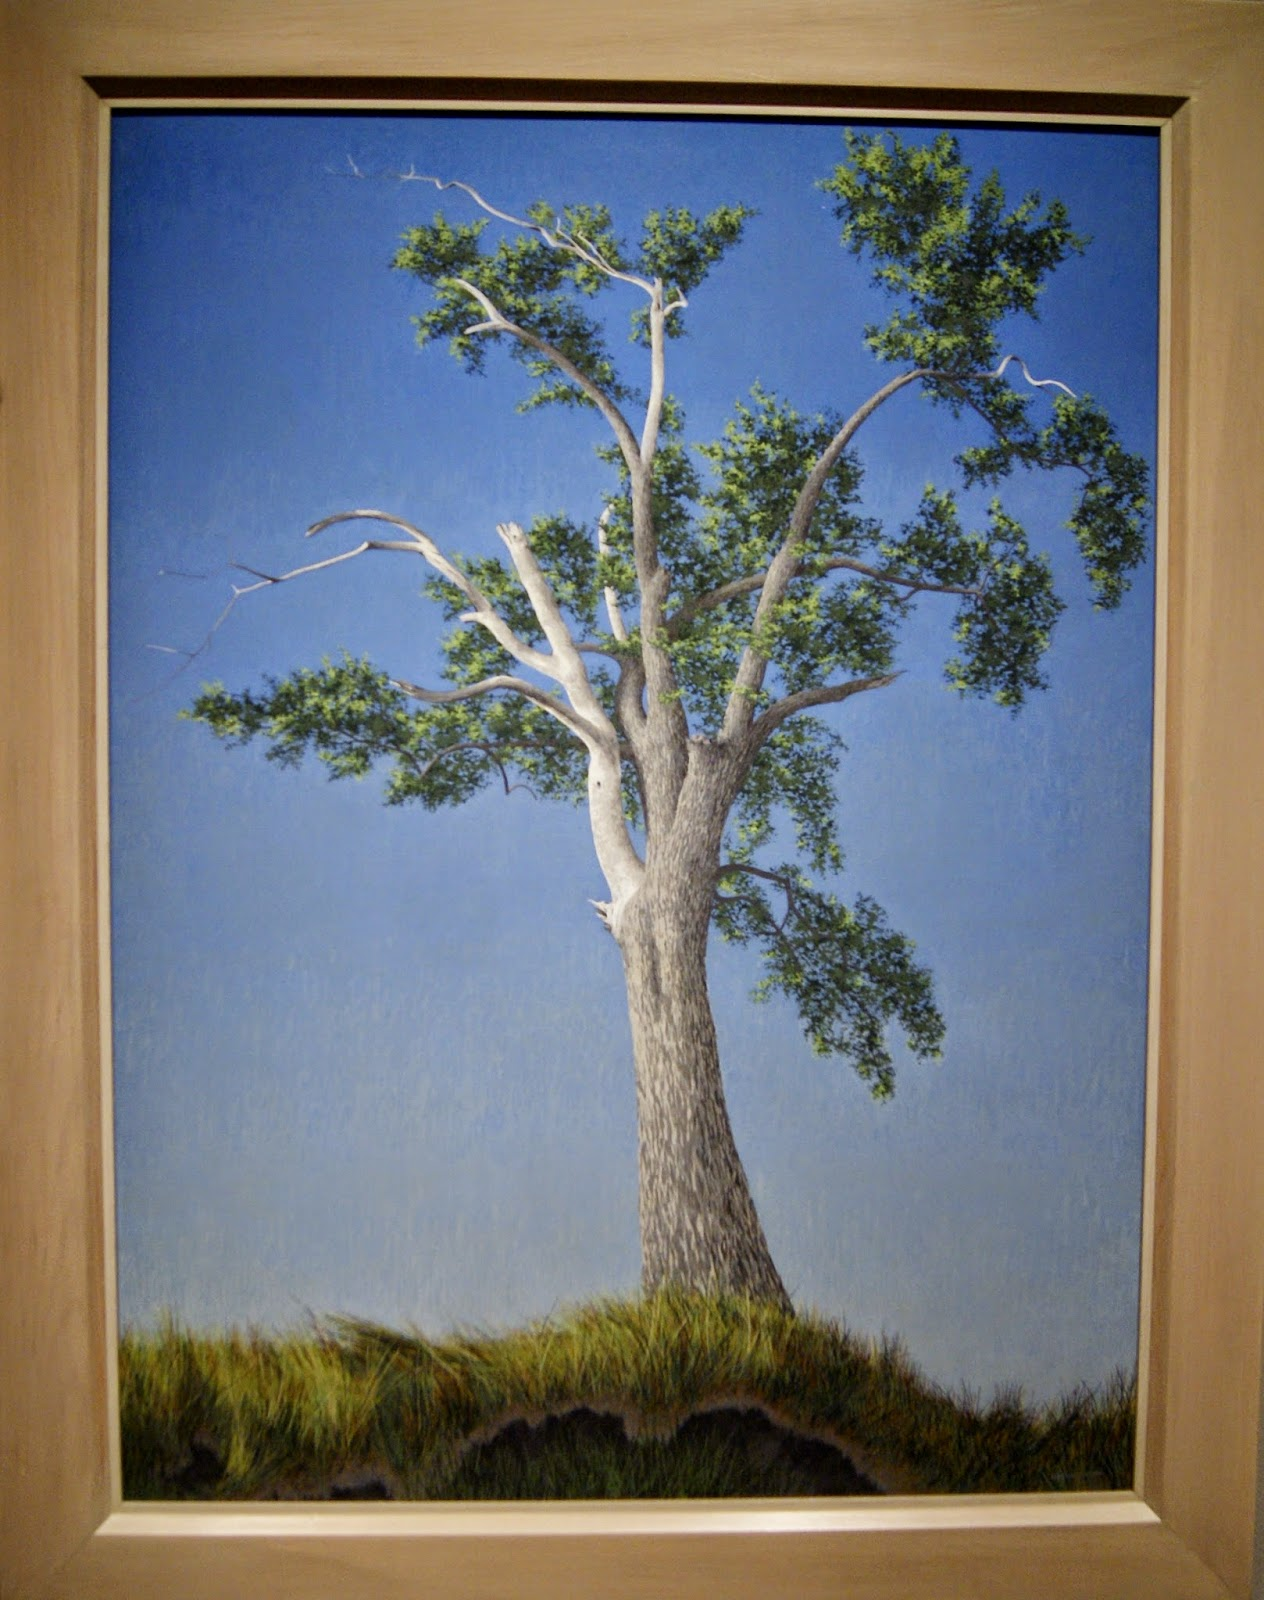 Alex Colville Exhibit at Art Gallery of Ontario in Toronto, Elm Tree At Horton Landing, 1956, paintings, art, artmatters, culture,ontario, Canadian Artist, Painter, Canada, Alice Munro, The Progress of Love